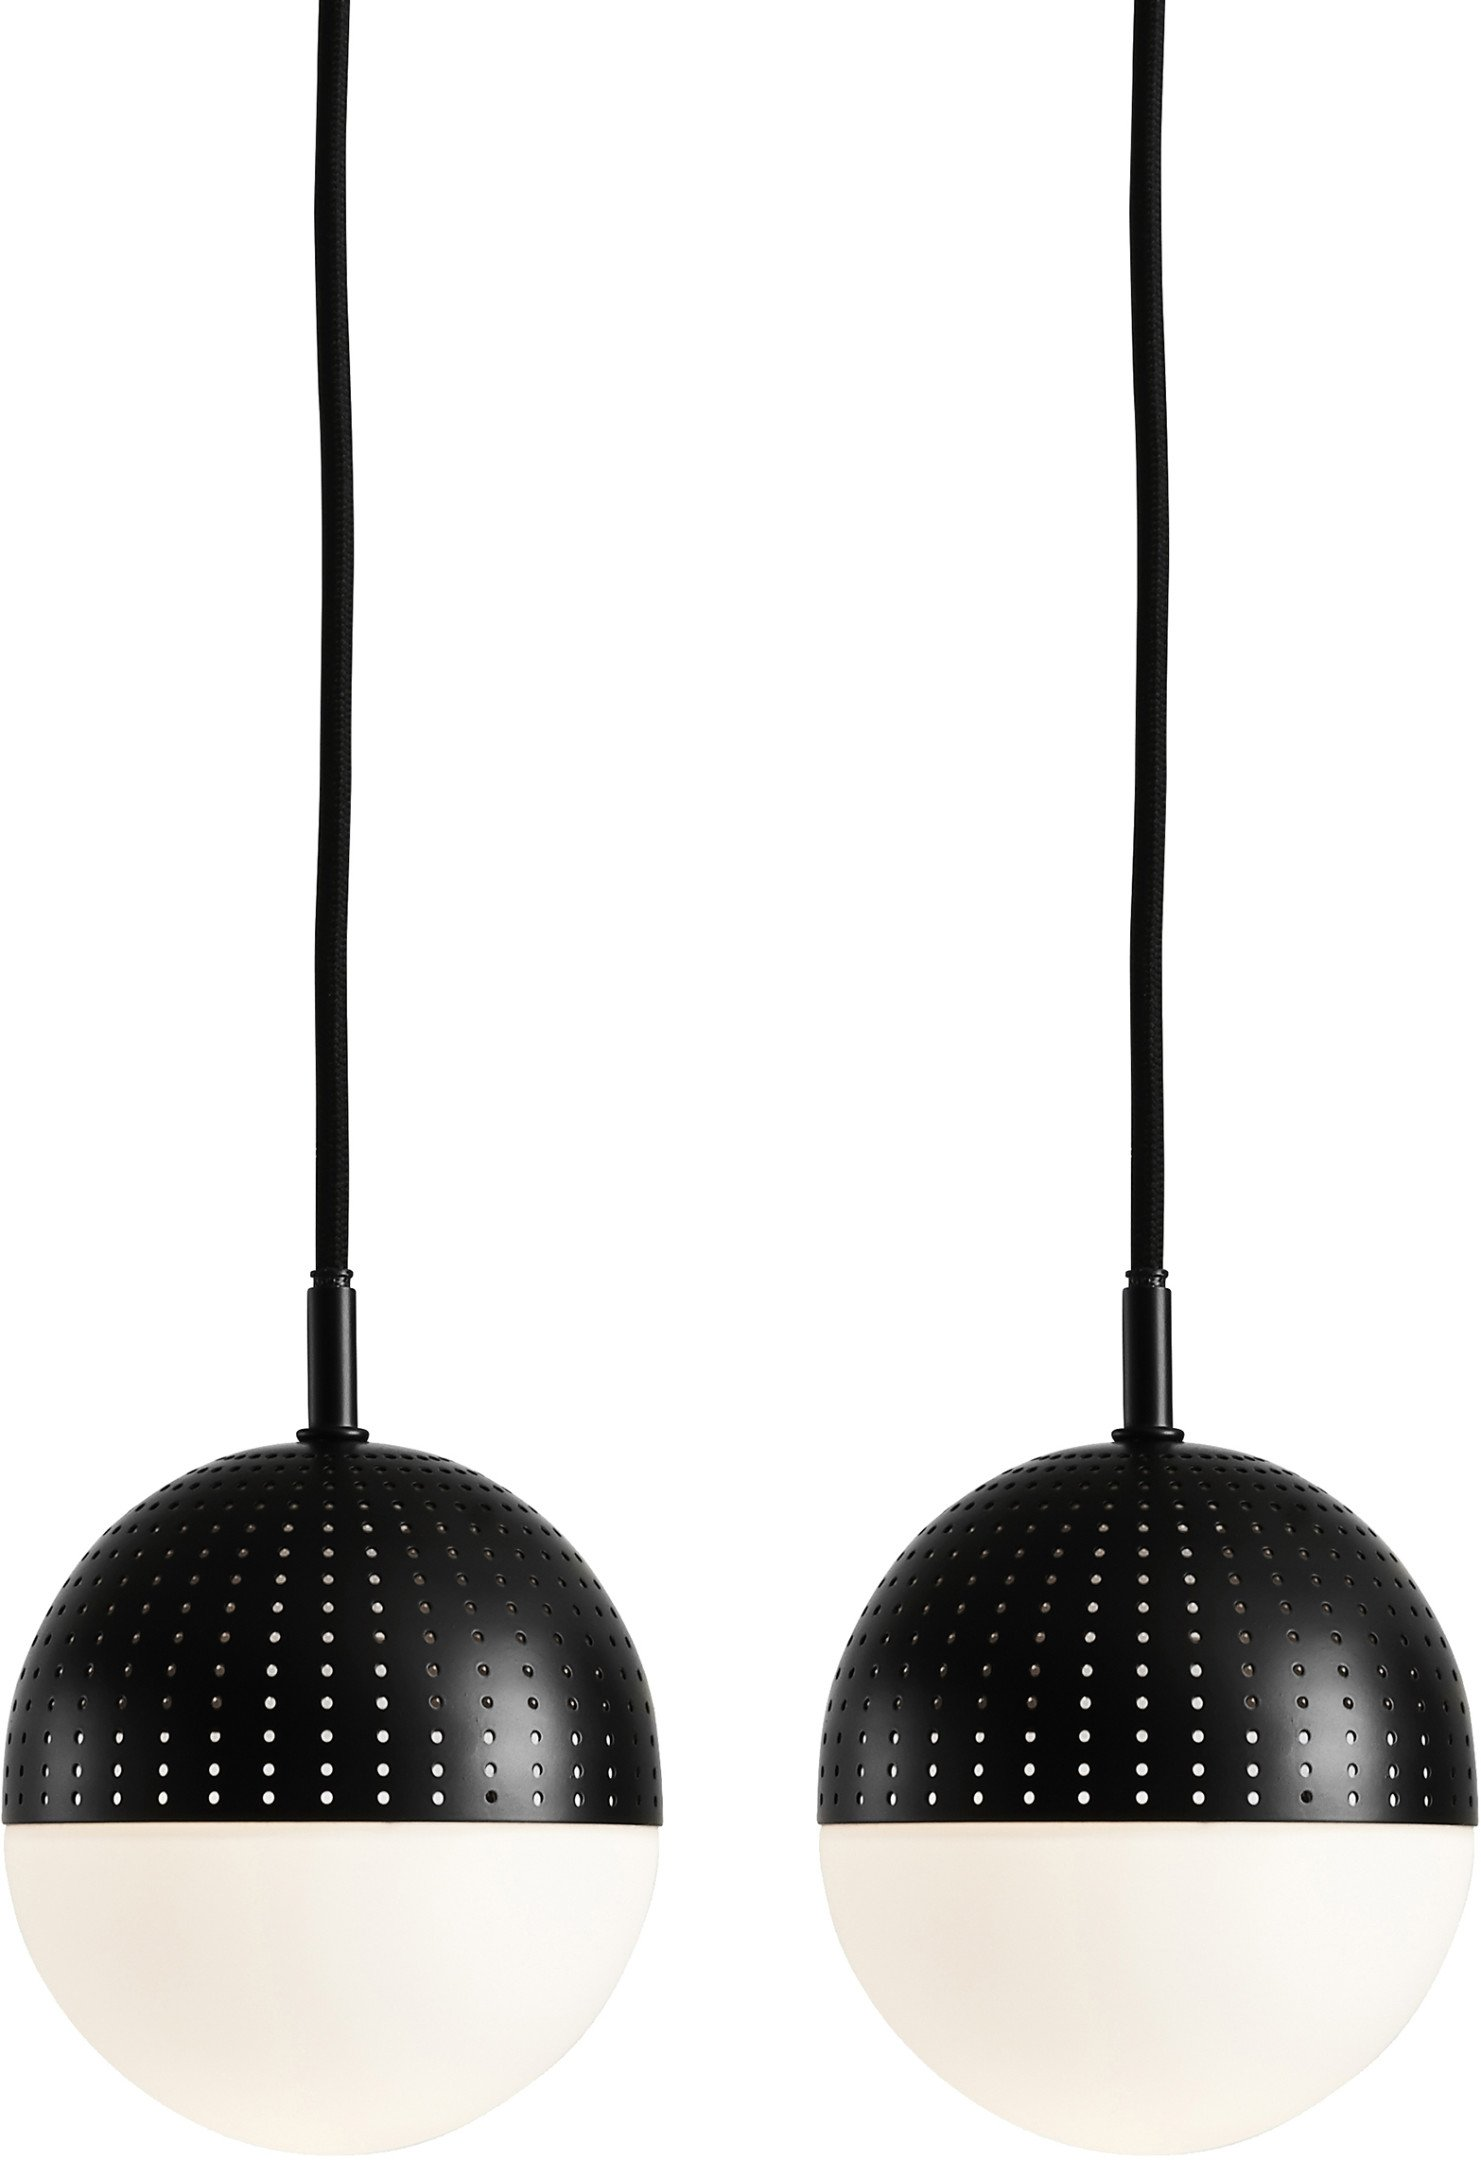 Pair of Dot Pendant Lamps S Black by R. Frost for WOUD